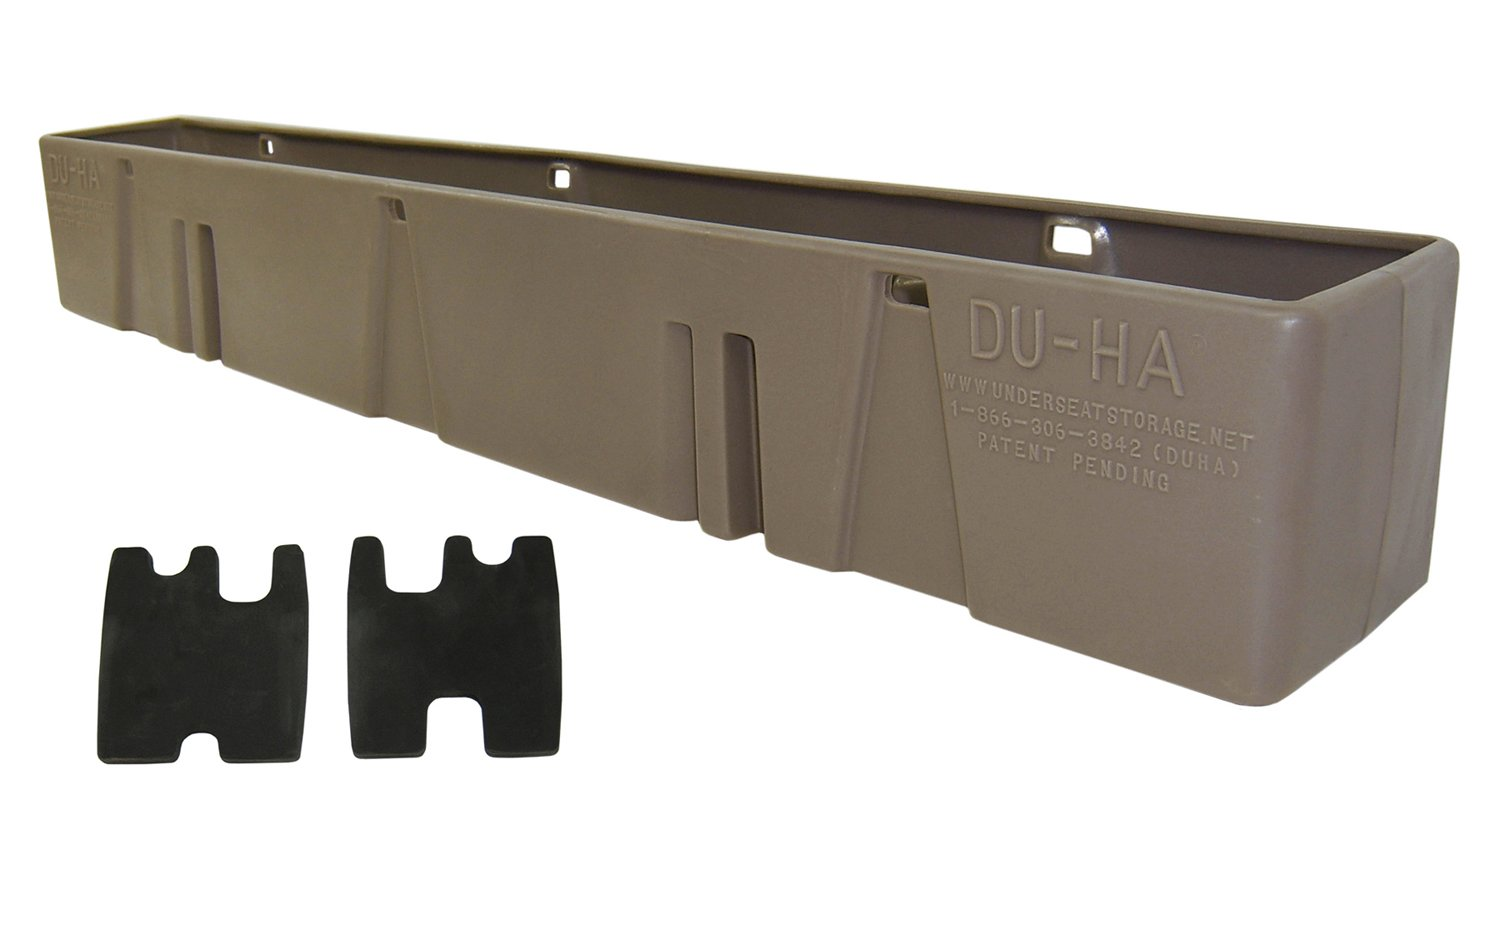 Du Ha 10058 Chevrolet and GMC Behind Seat Storage Console Organizer DUH:10058